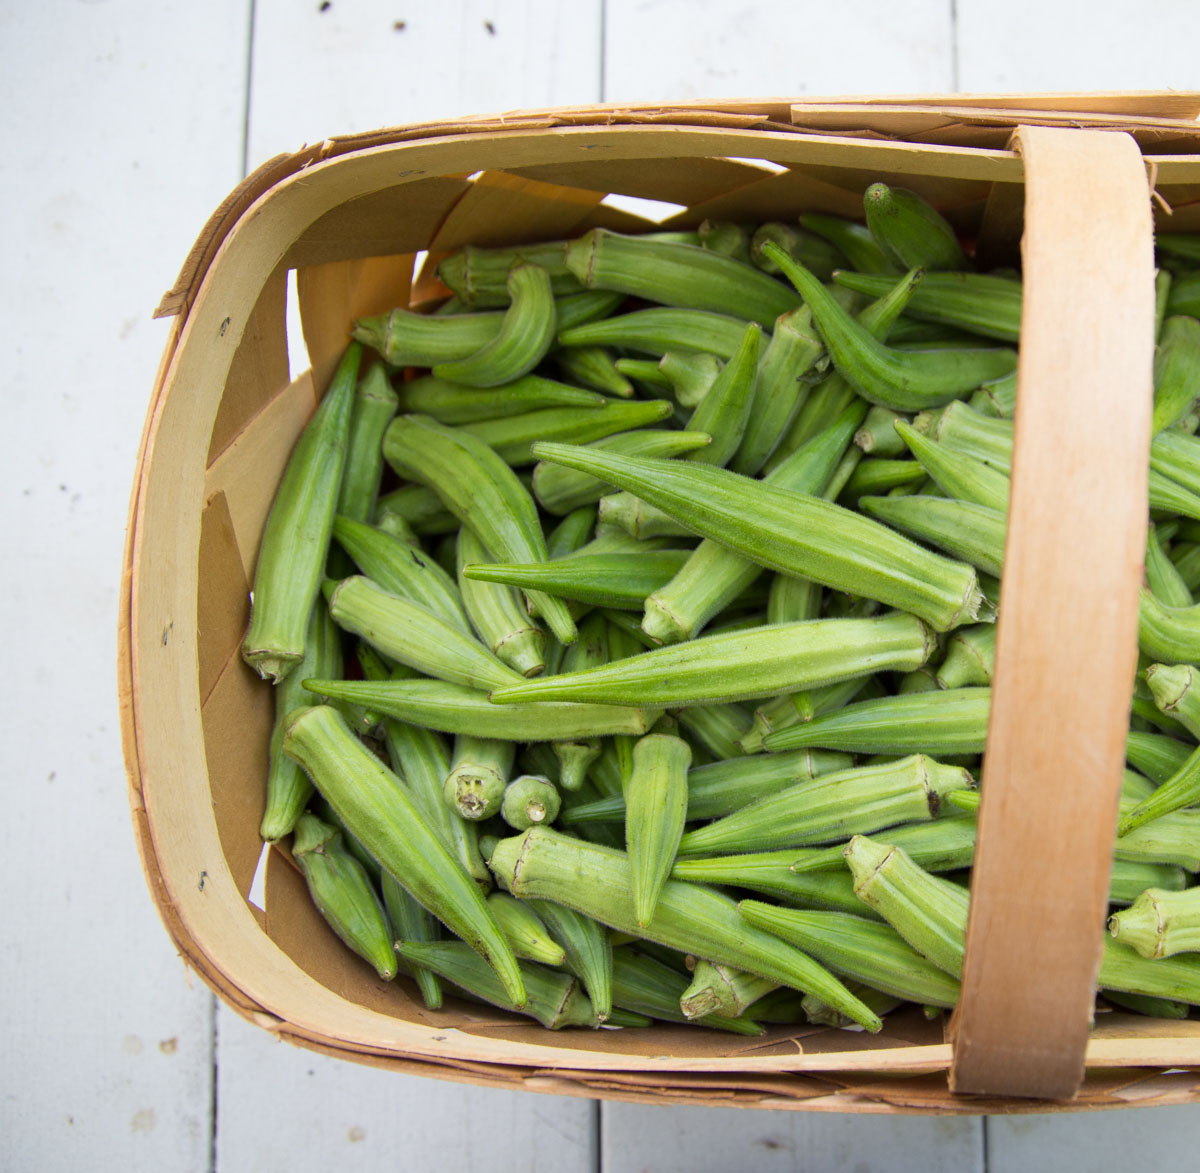 Fresh okra in a basket